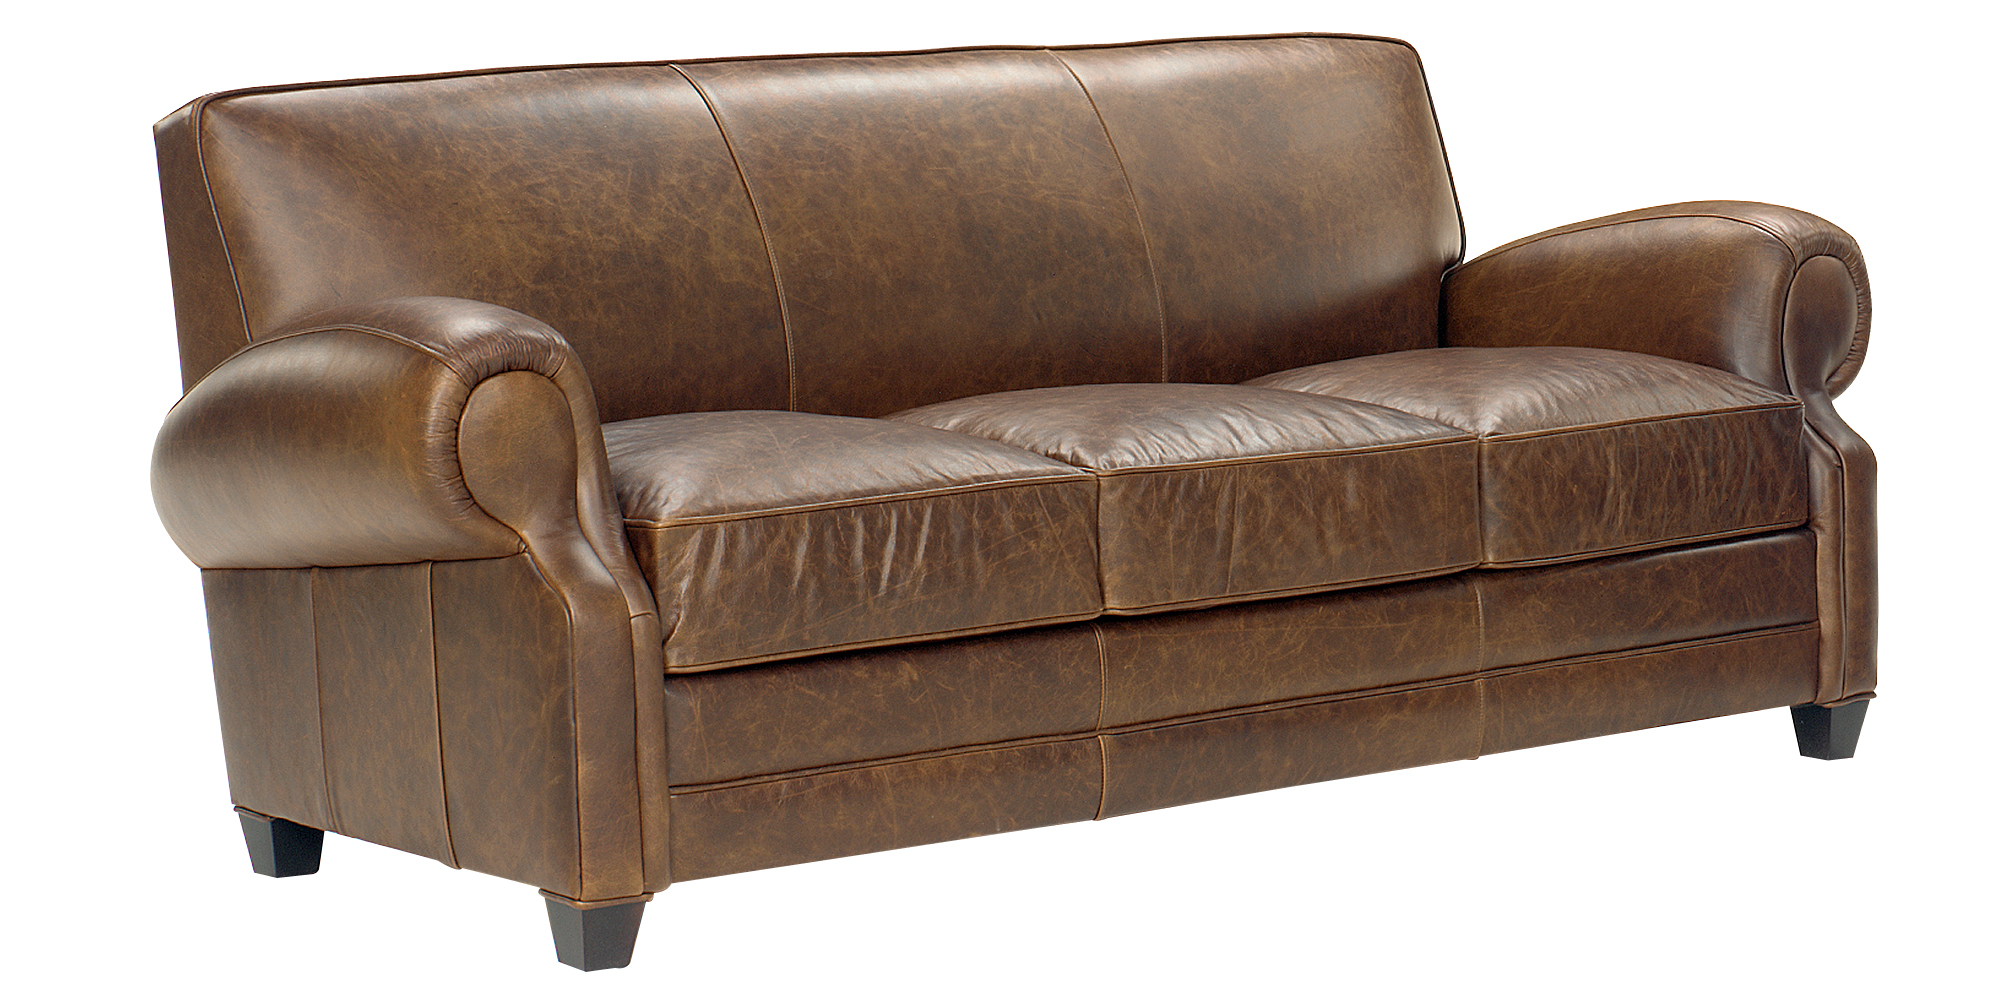 high end leather sofas fabric sofa bed uk luxurious collection club furniture